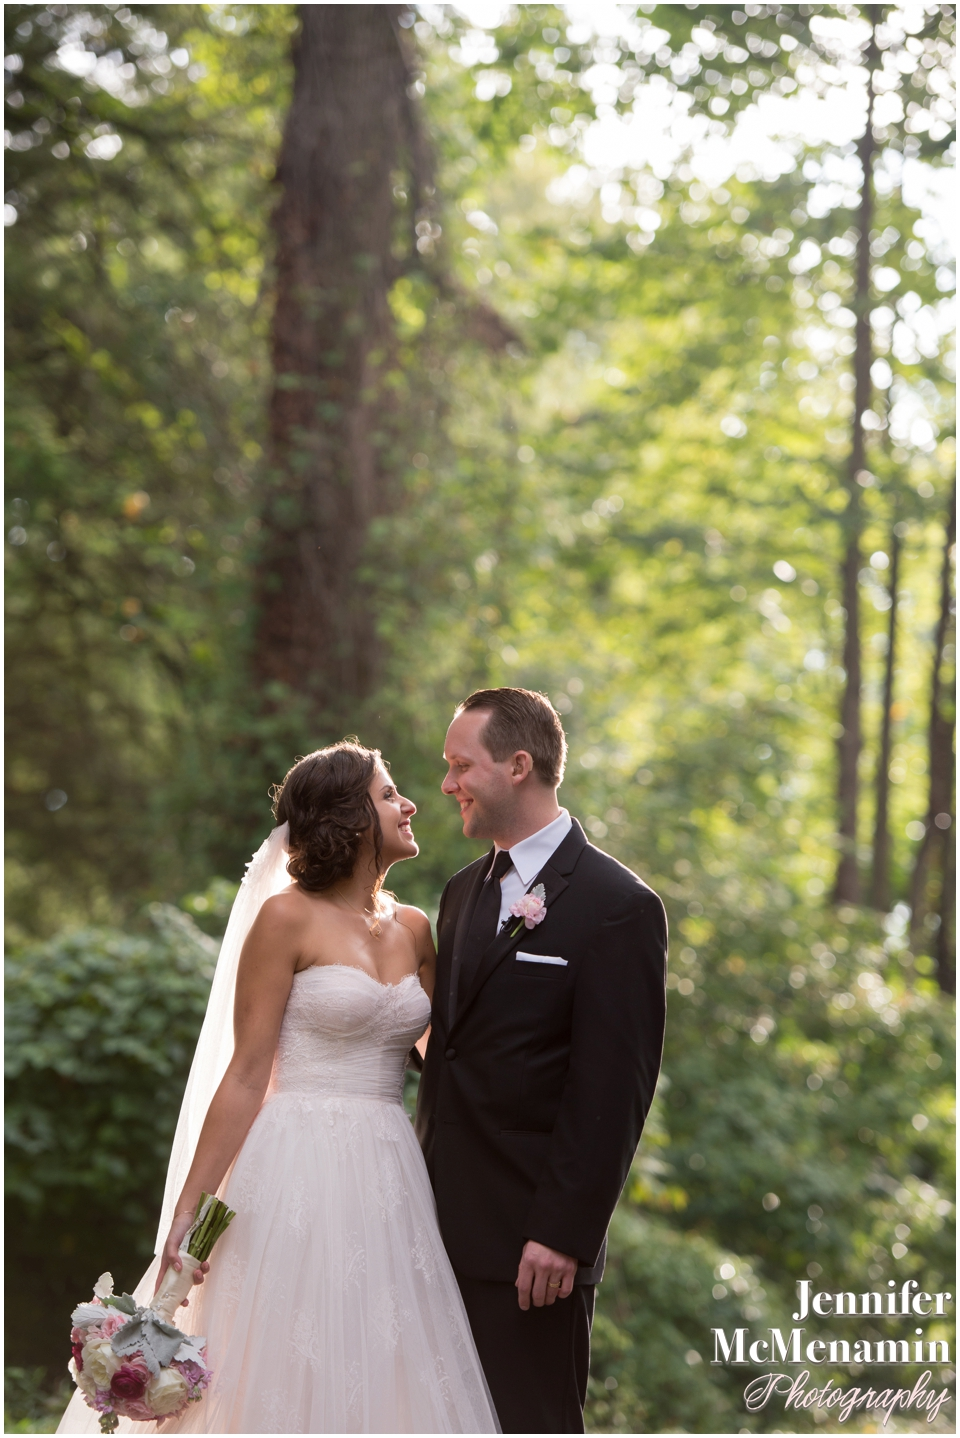 0087-BlumWilliams_03278-0646_JenniferMcMenaminPhotography_Evergreen-Museum-Carriage-House_Baltimore-wedding-photography_Baltimore-wedding-photographer